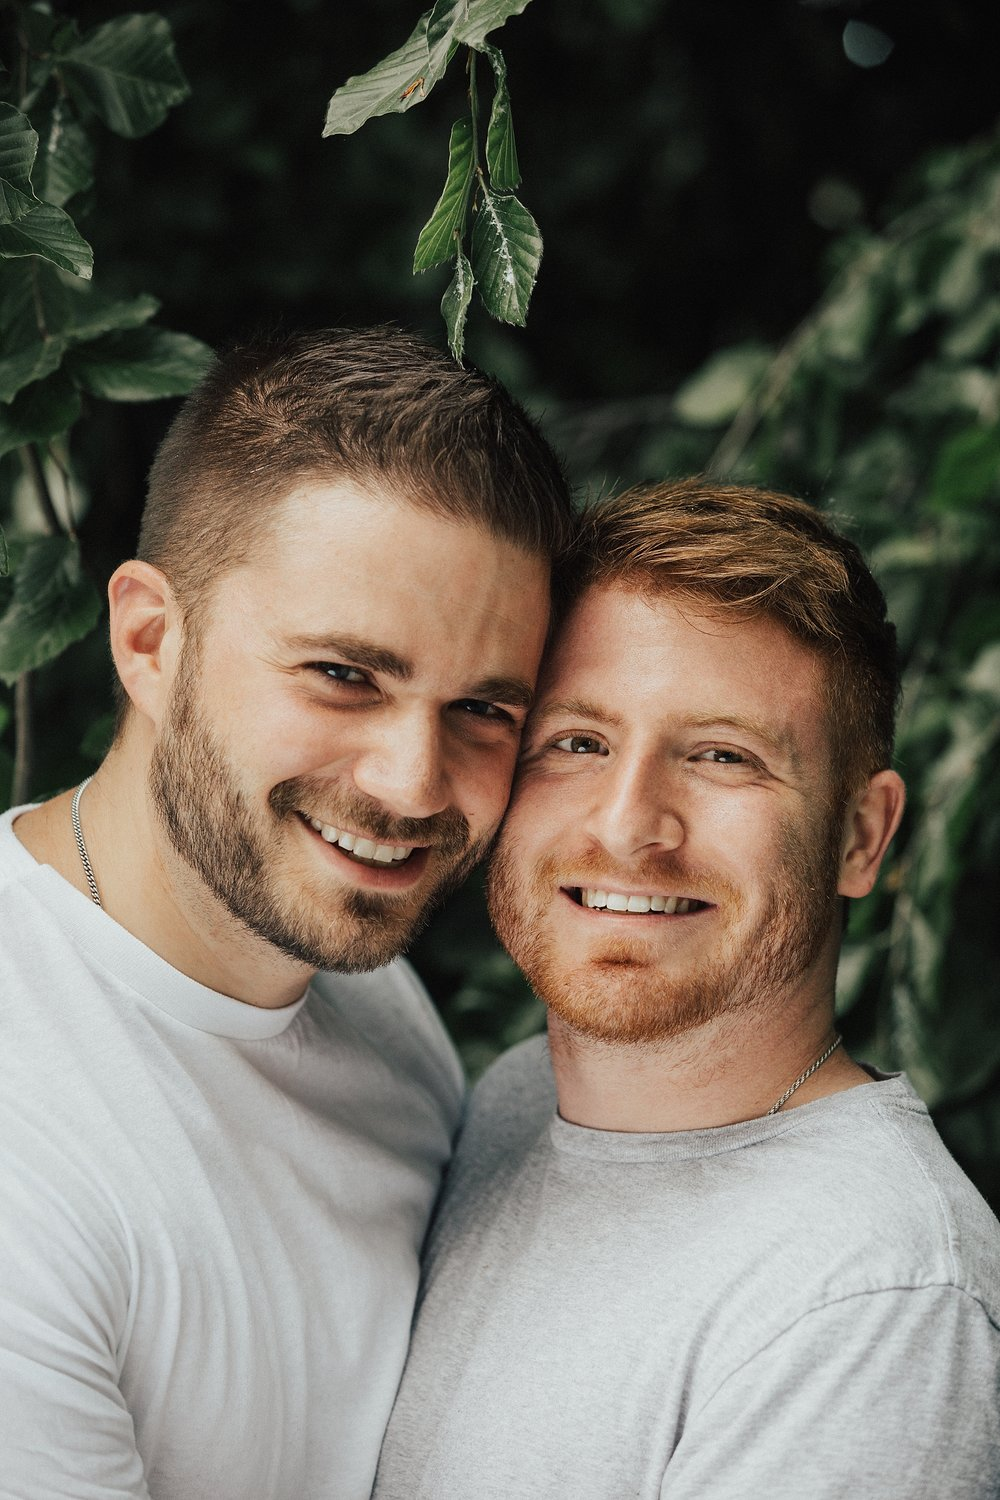 Joe_Mac_Creative_Wedding_Engagement_Philadelphia_Philly_Photography_LGBT_Gay_Penn_State___0024.jpg